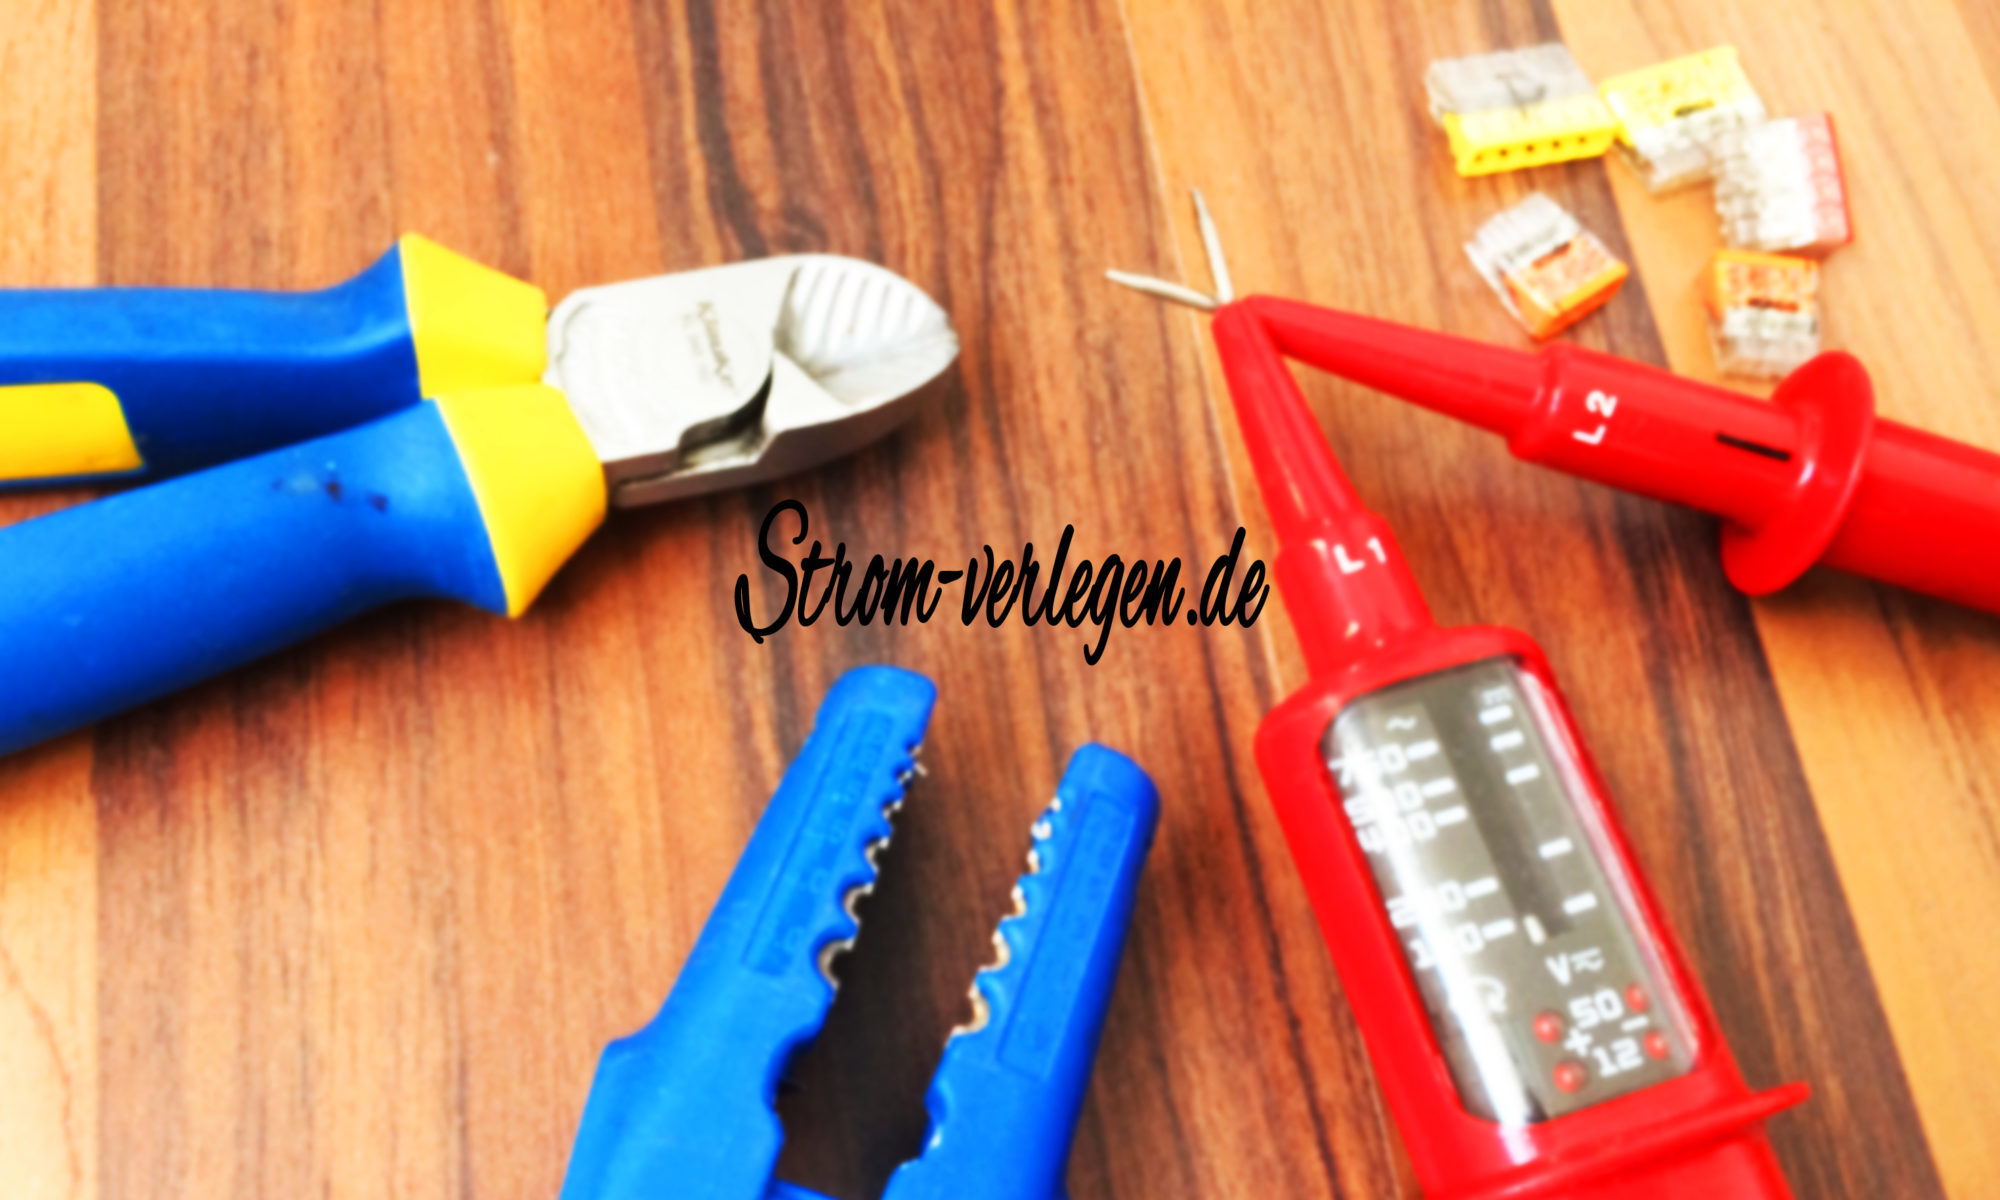 Simple DIY Strom verlege Anleitungen